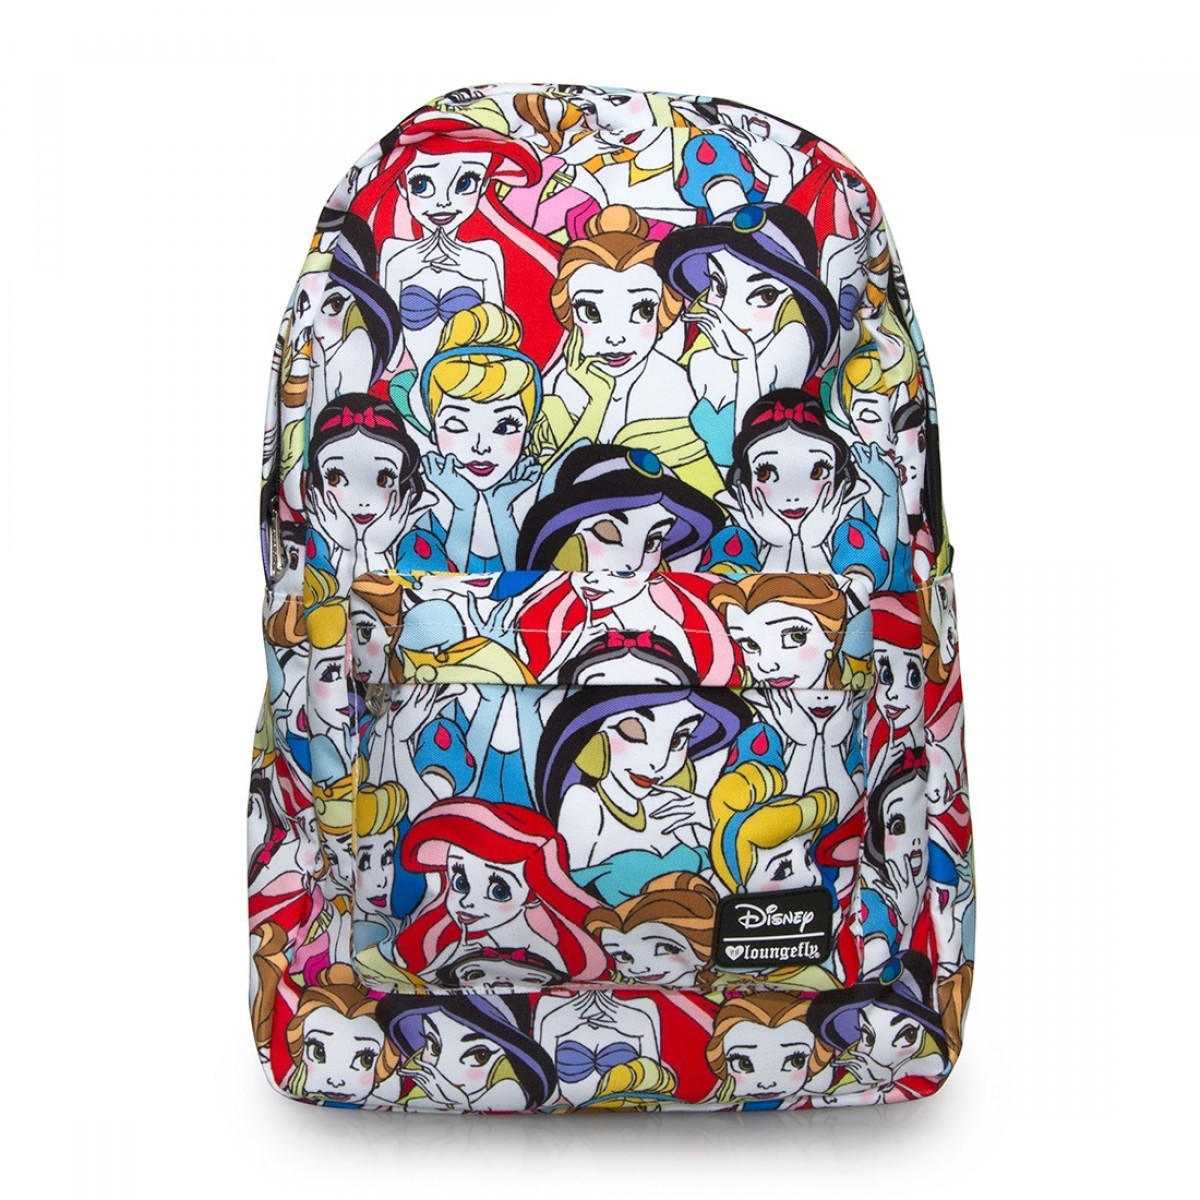 b2b3bdc8d00 ... Loungefly Disney Princesses Backpack image ...